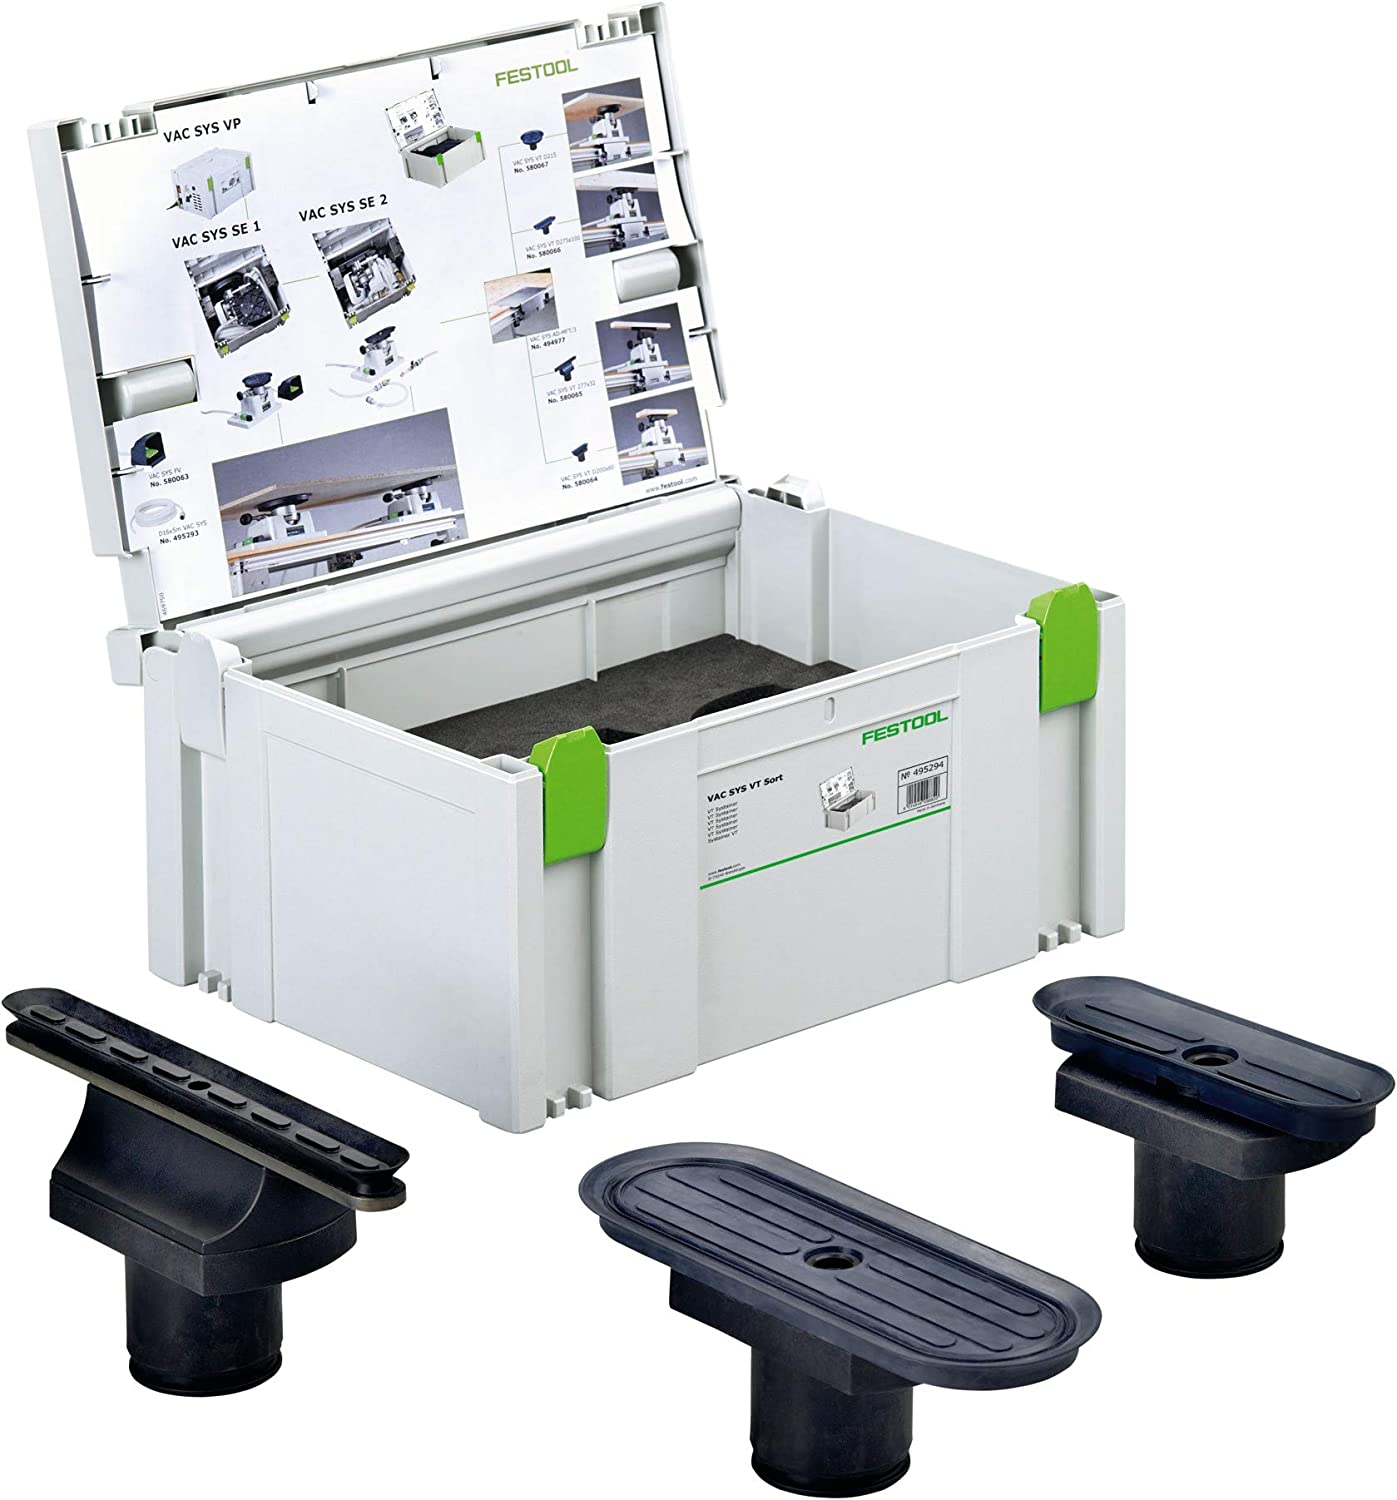 Festool 495294 VAC-SYS Accessory Set